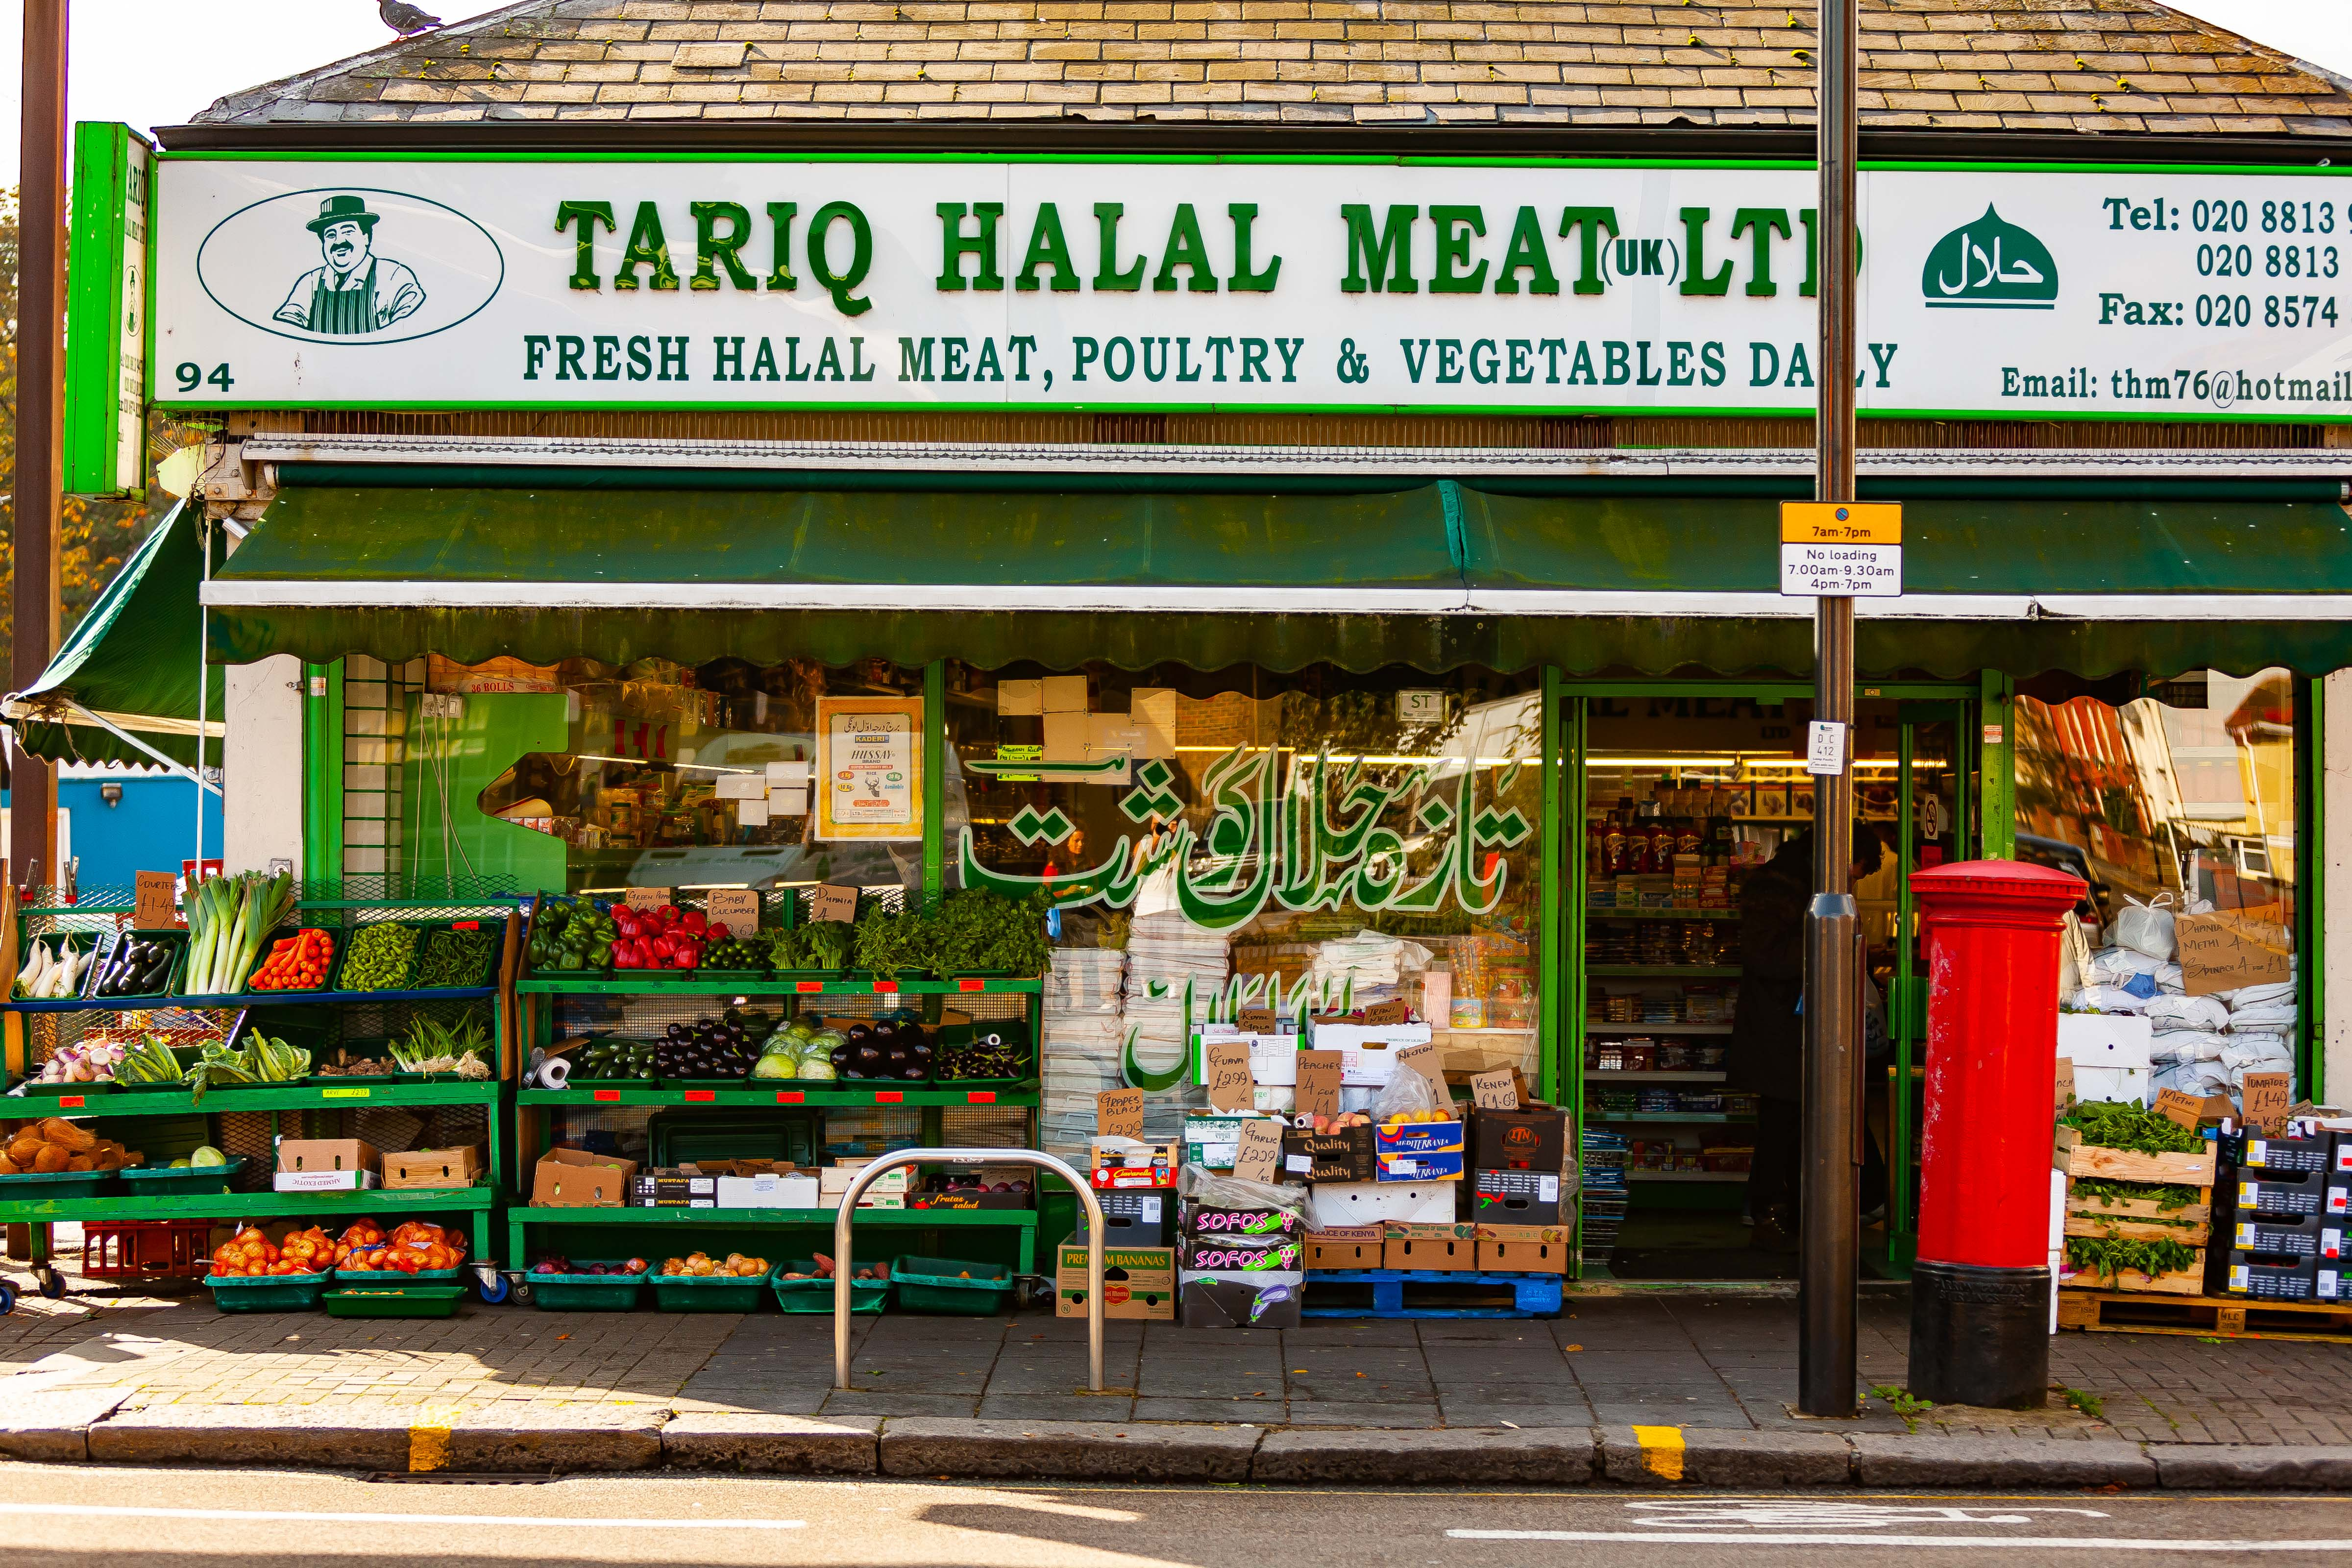 UK, Hillingdon (London) Prov, Tariq Halal Meat, 2009, IMG 3161